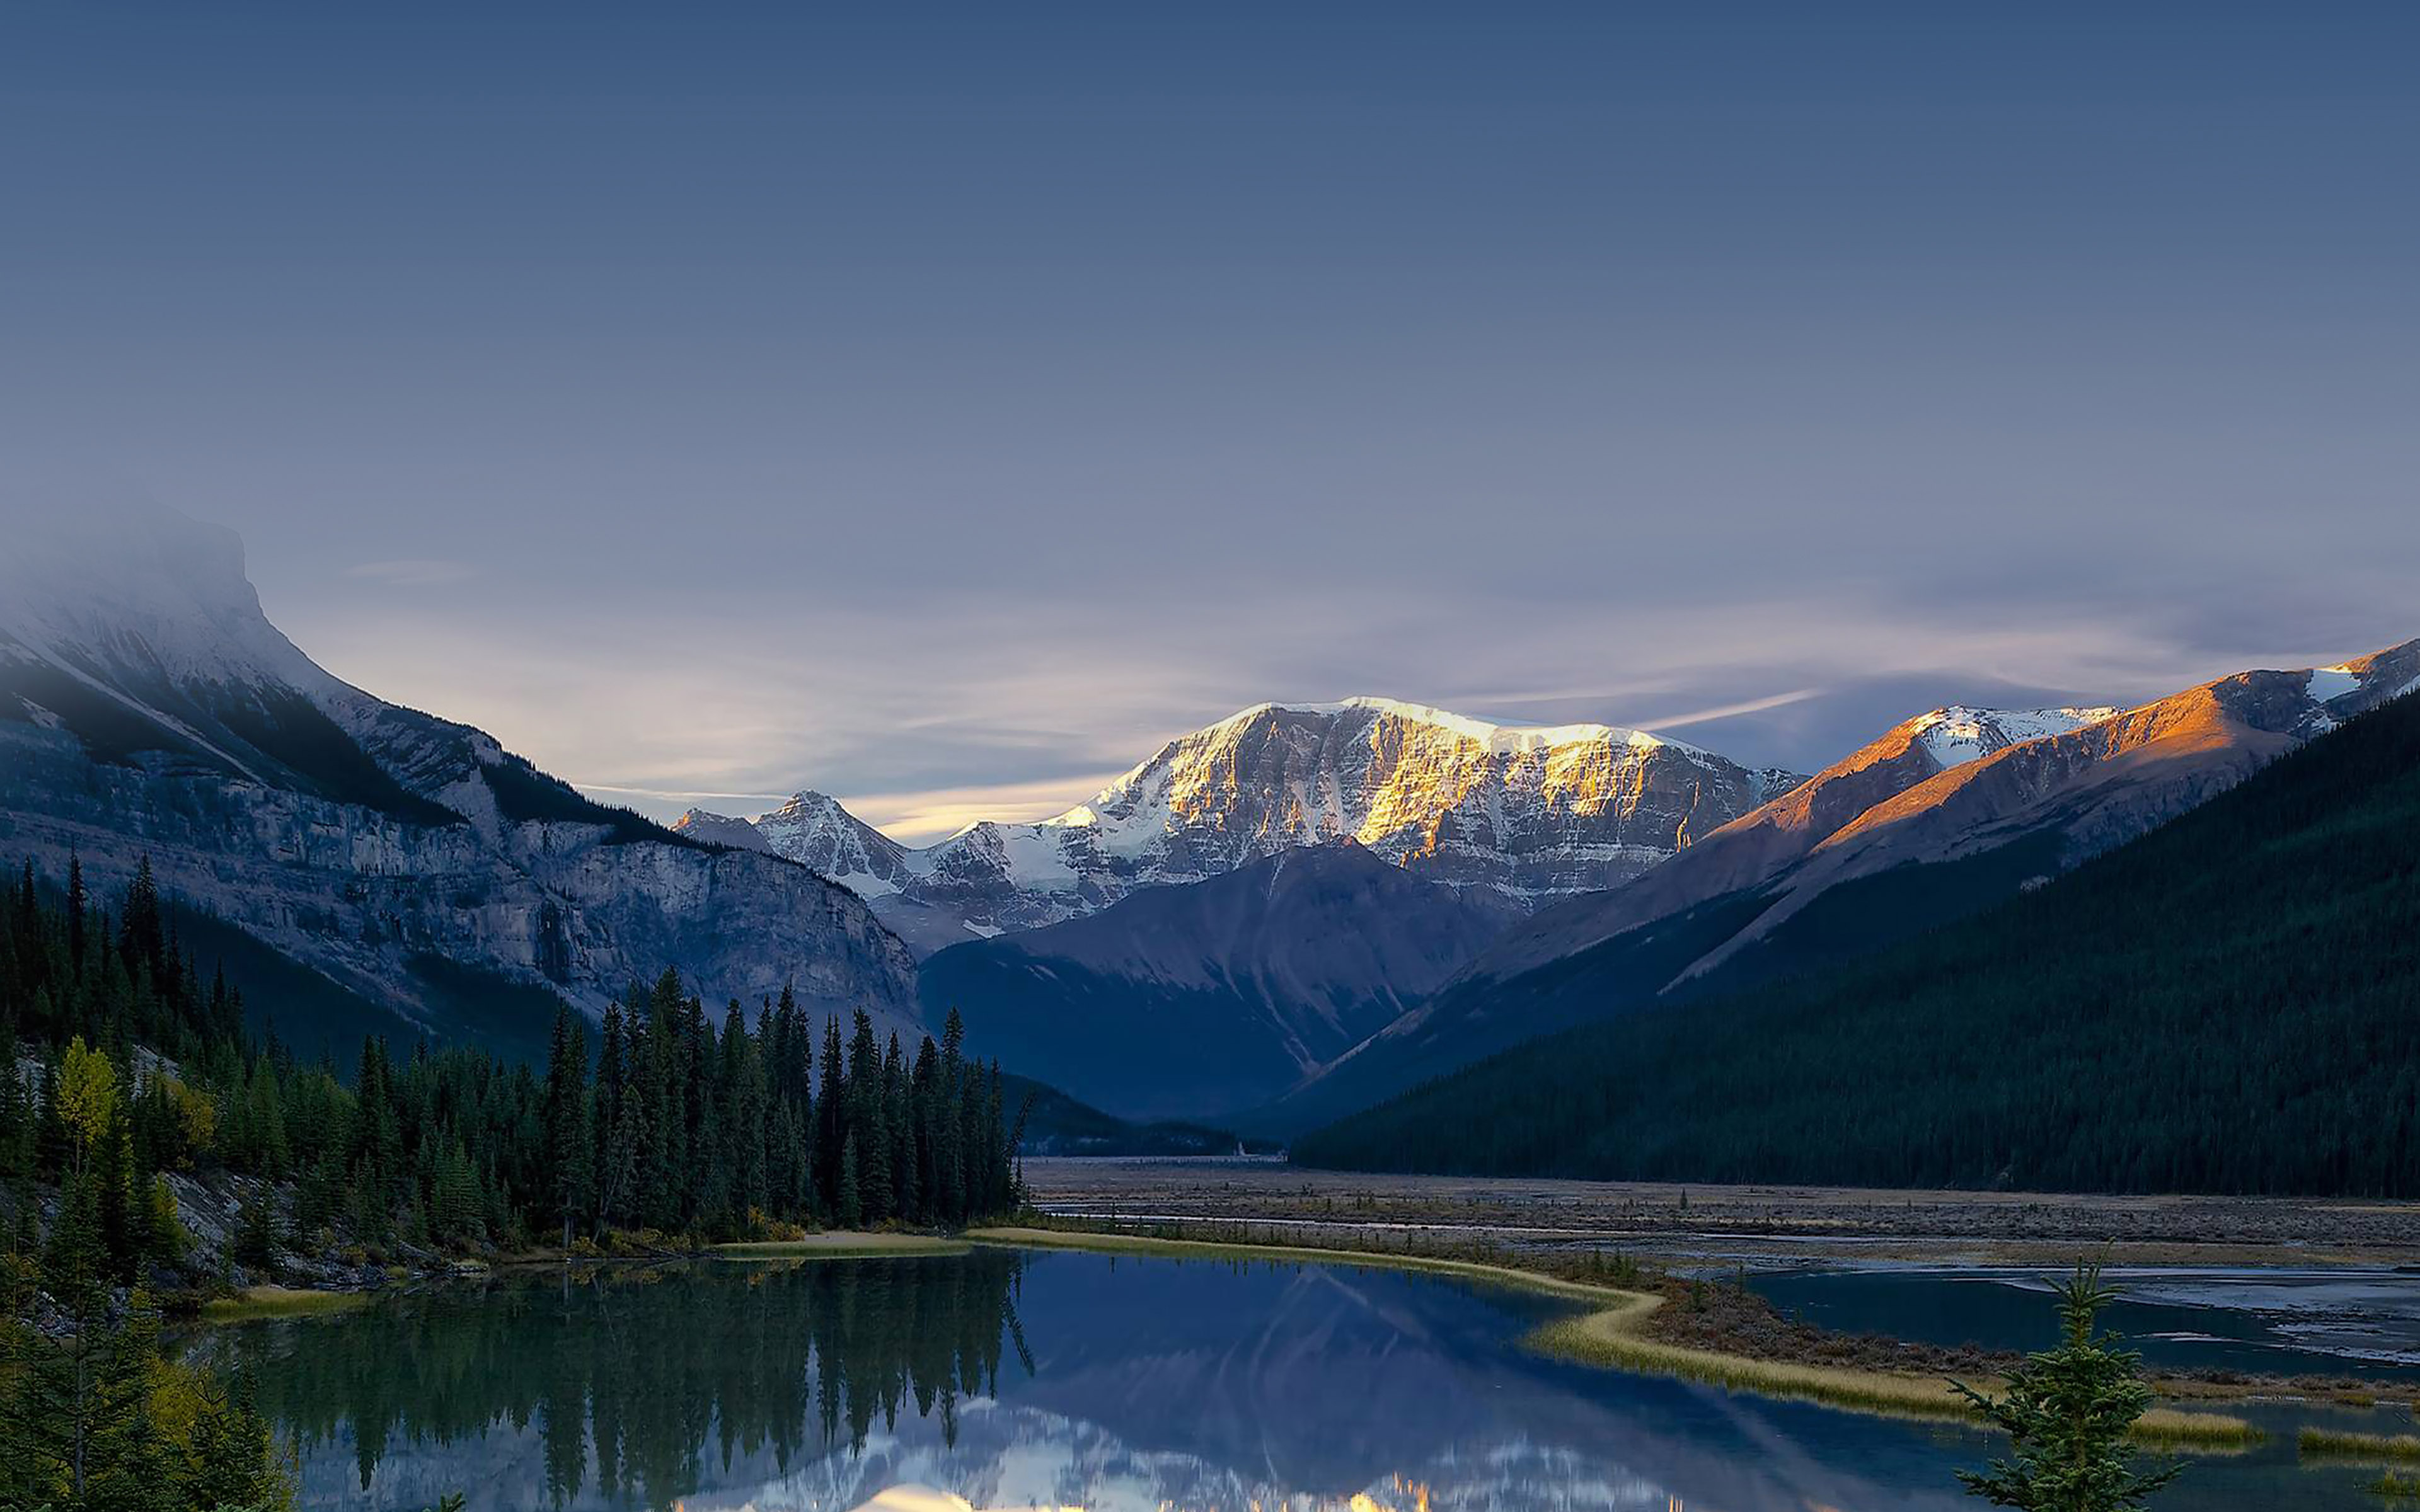 mb37-wallpaper-mountain-lake-fantastic-nature - Papers.co